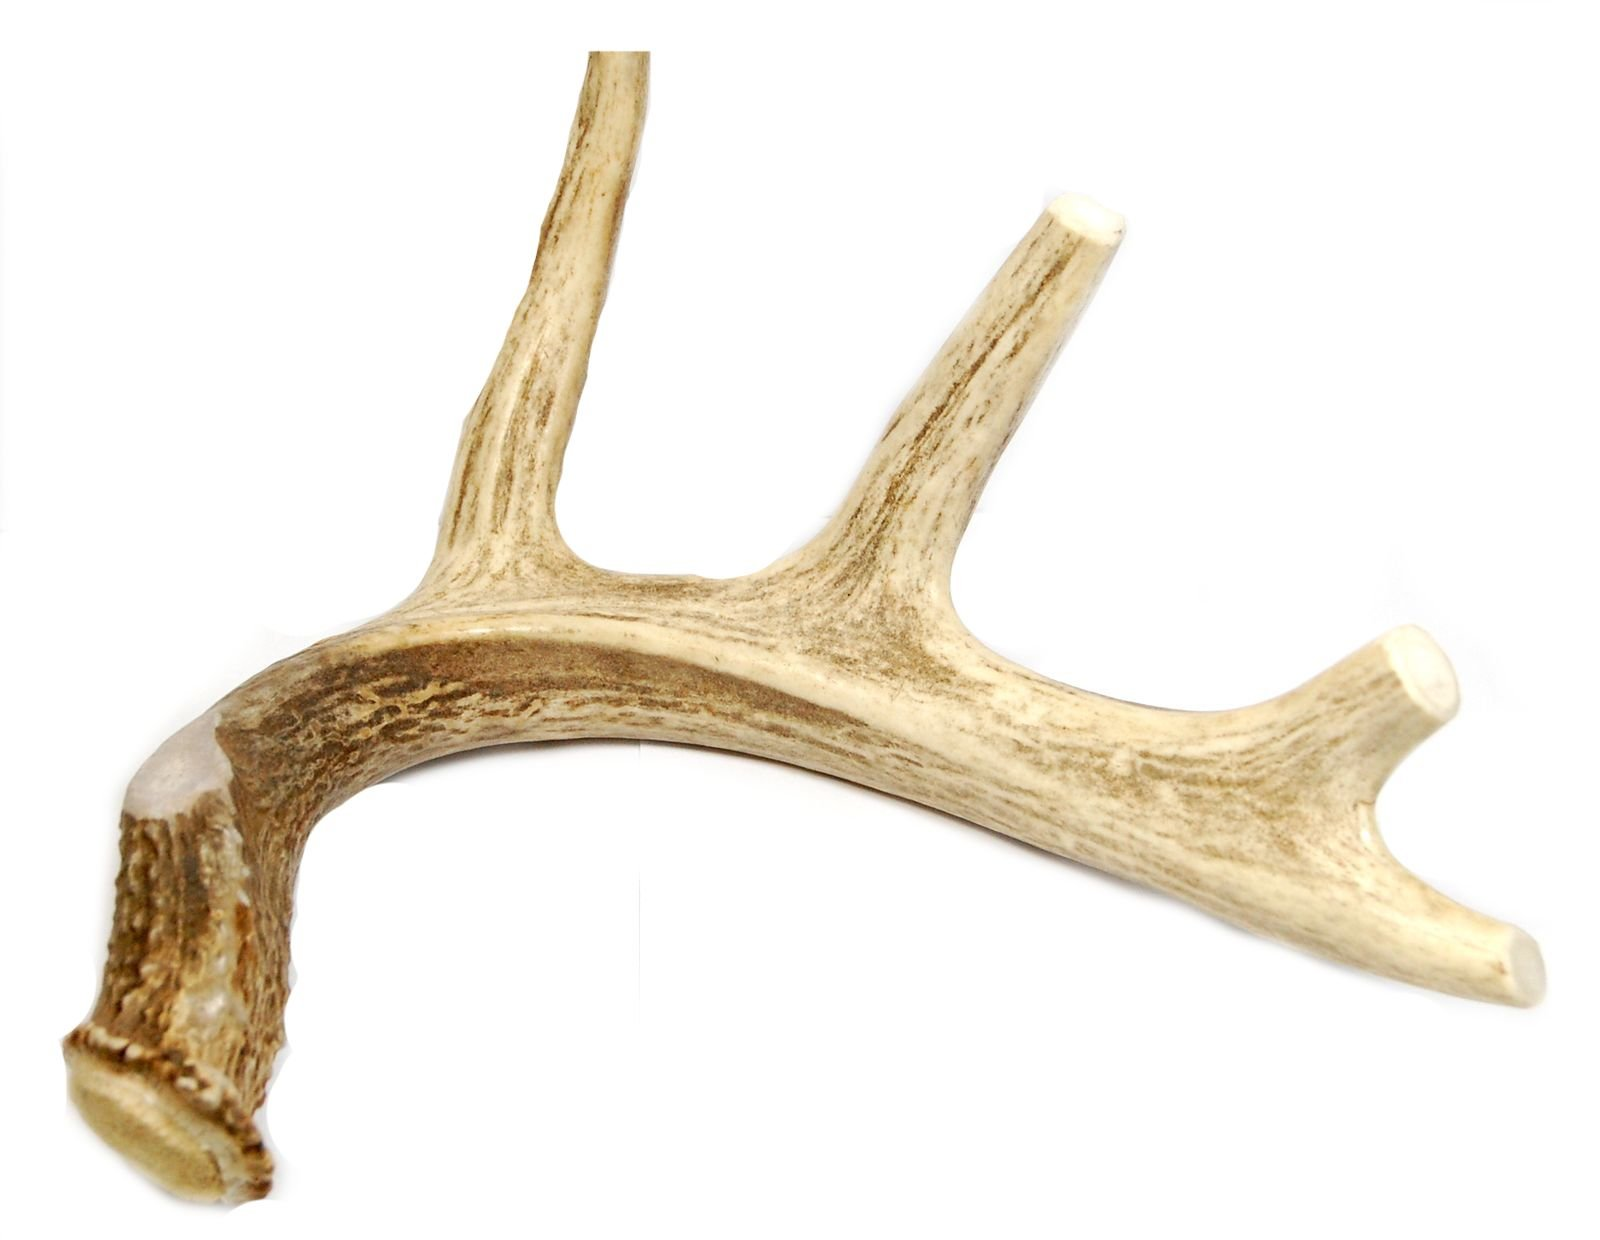 Big Dog Antler Chews Brand - Extra Large Whole Deer Antler Dog Chew - for Large Dogs and Puppies